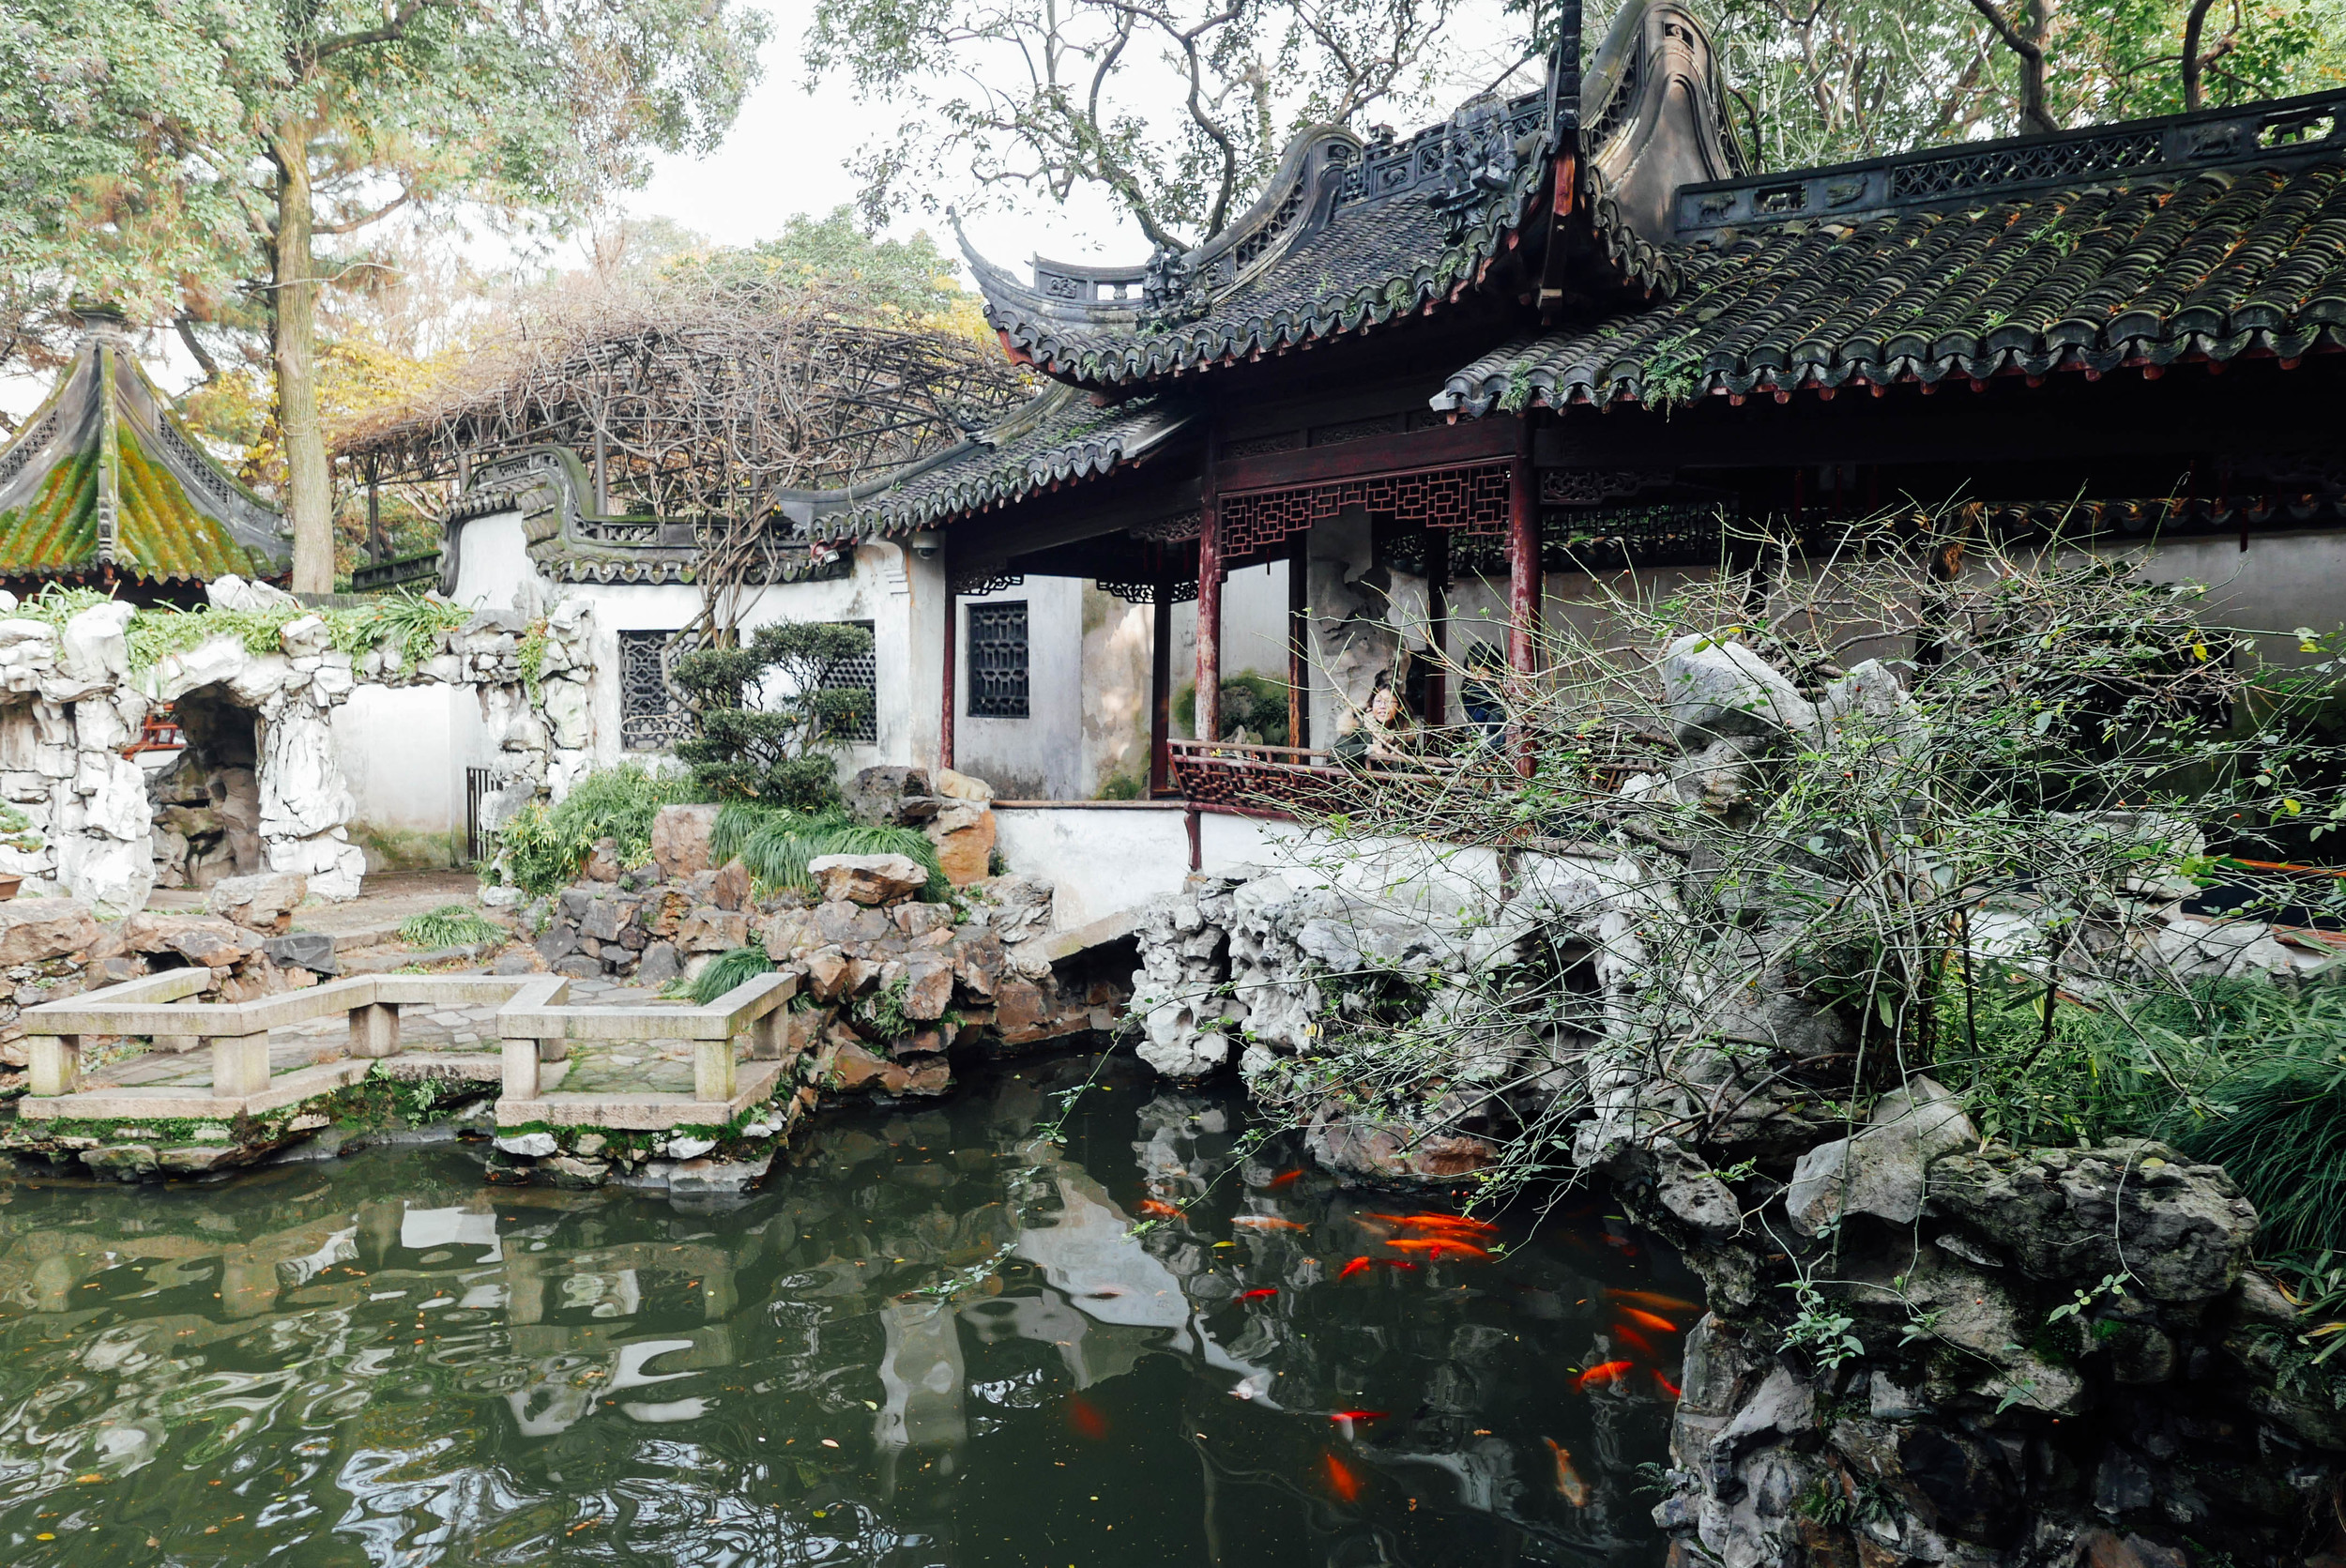 Scenes from a Chinese garden.